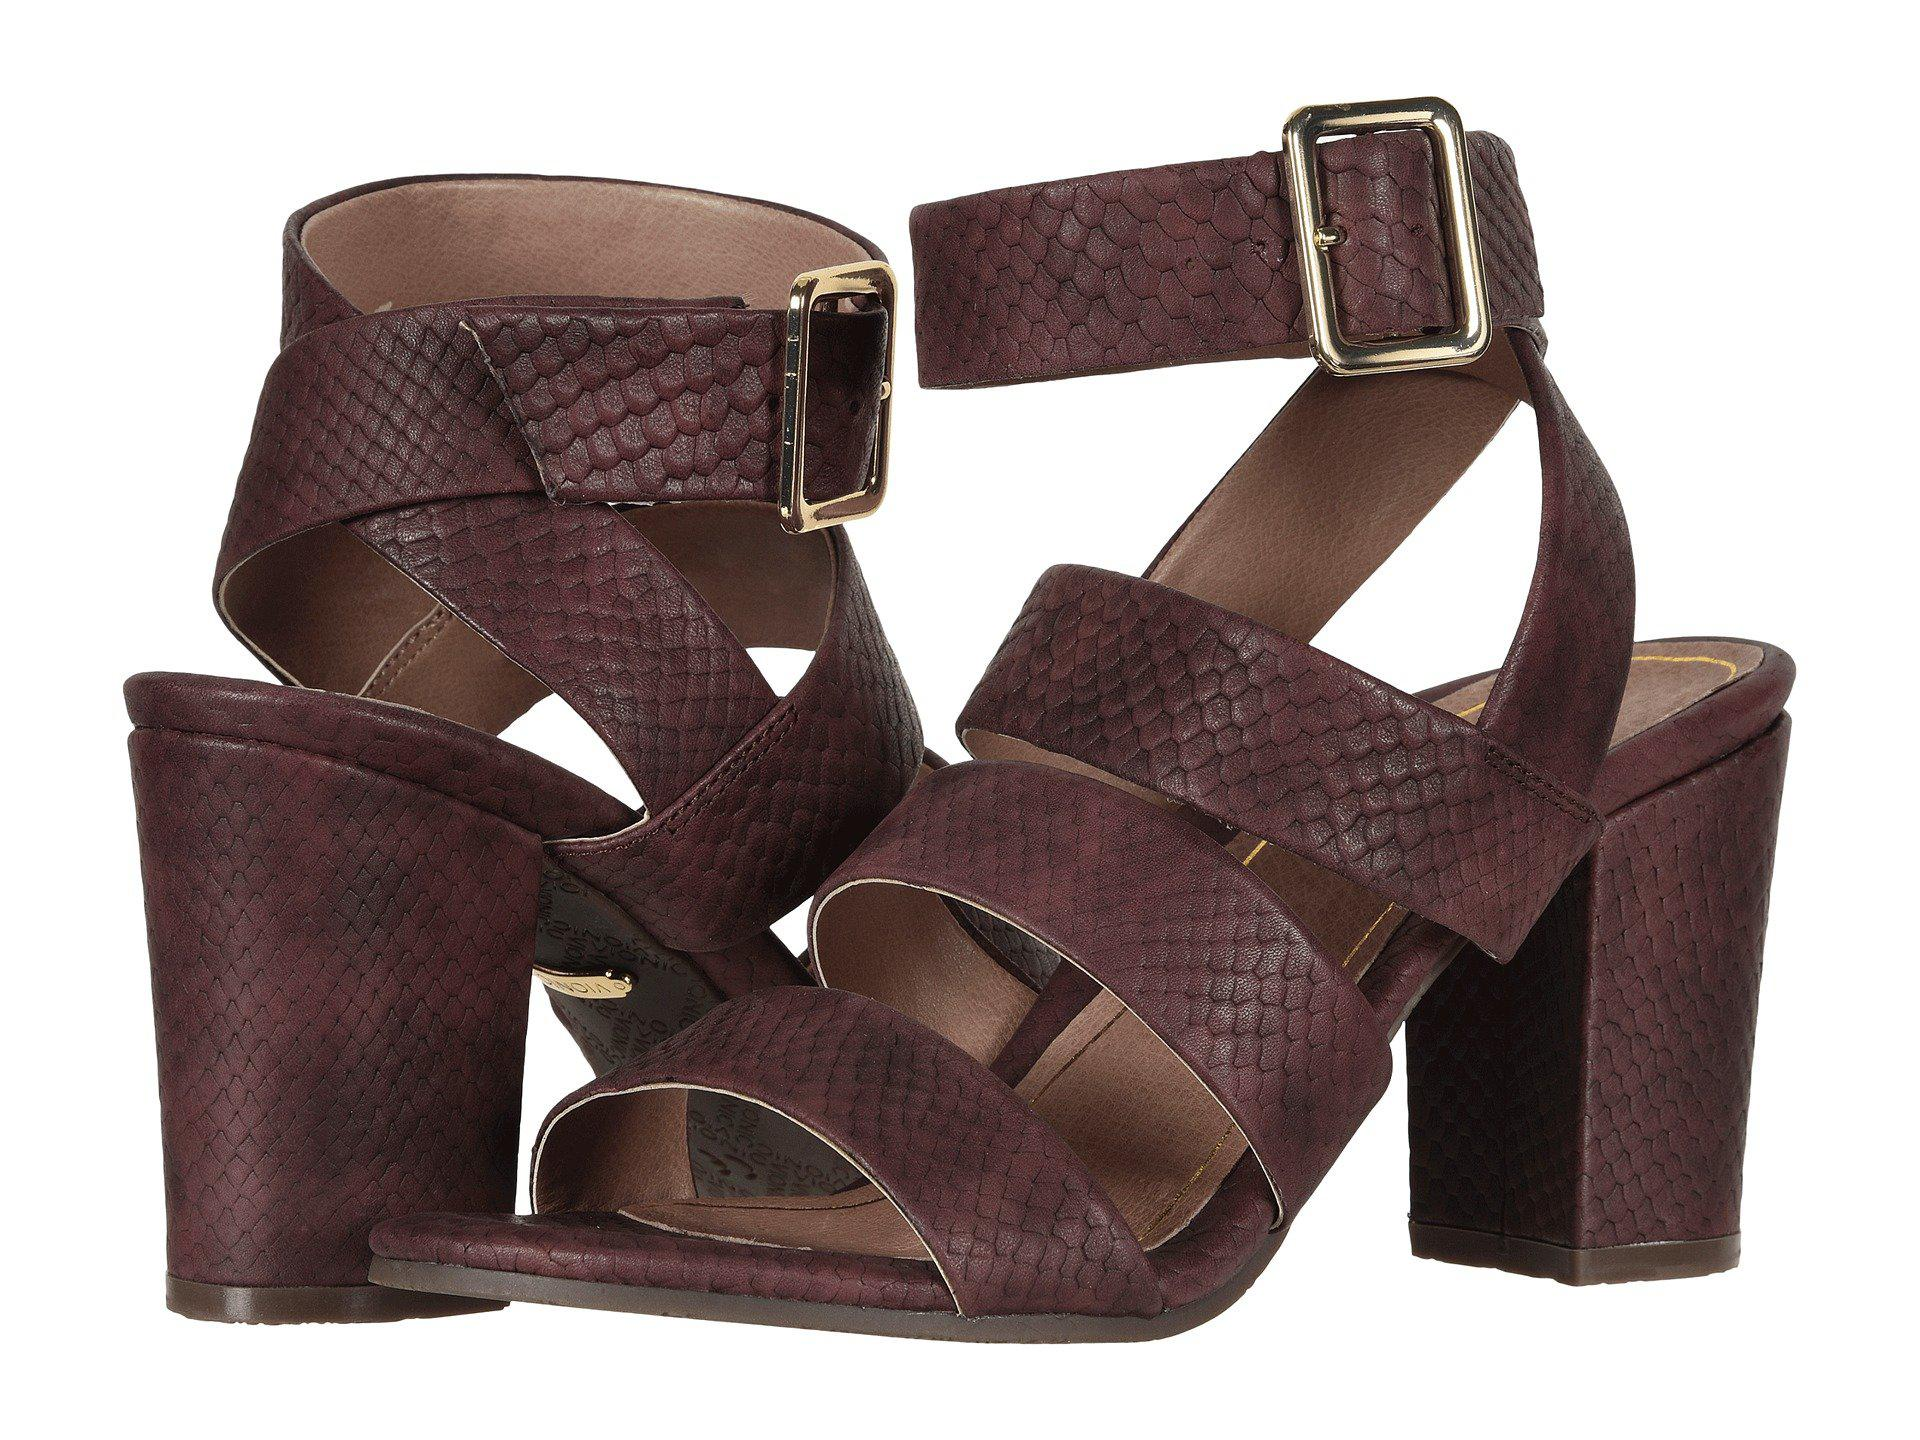 8b23259b383a Lyst - Vionic Blaire in Brown - Save 10%